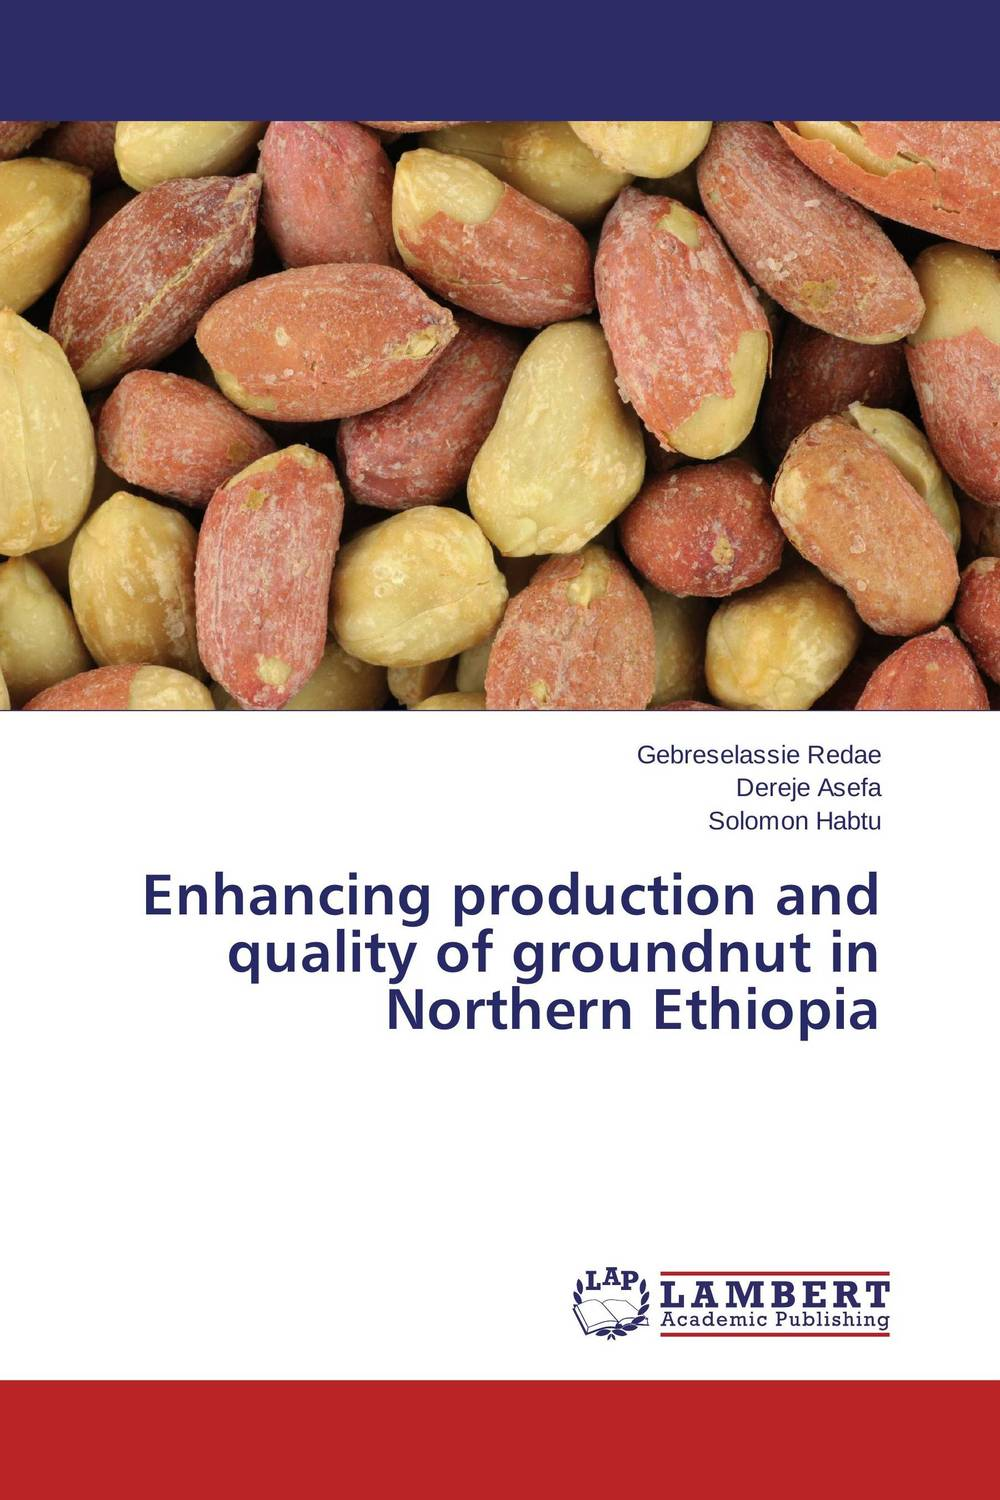 Enhancing production and quality of groundnut in Northern Ethiopia h n gour pankaj sharma and rakesh kaushal pathological aspects and management of root rot of groundnut